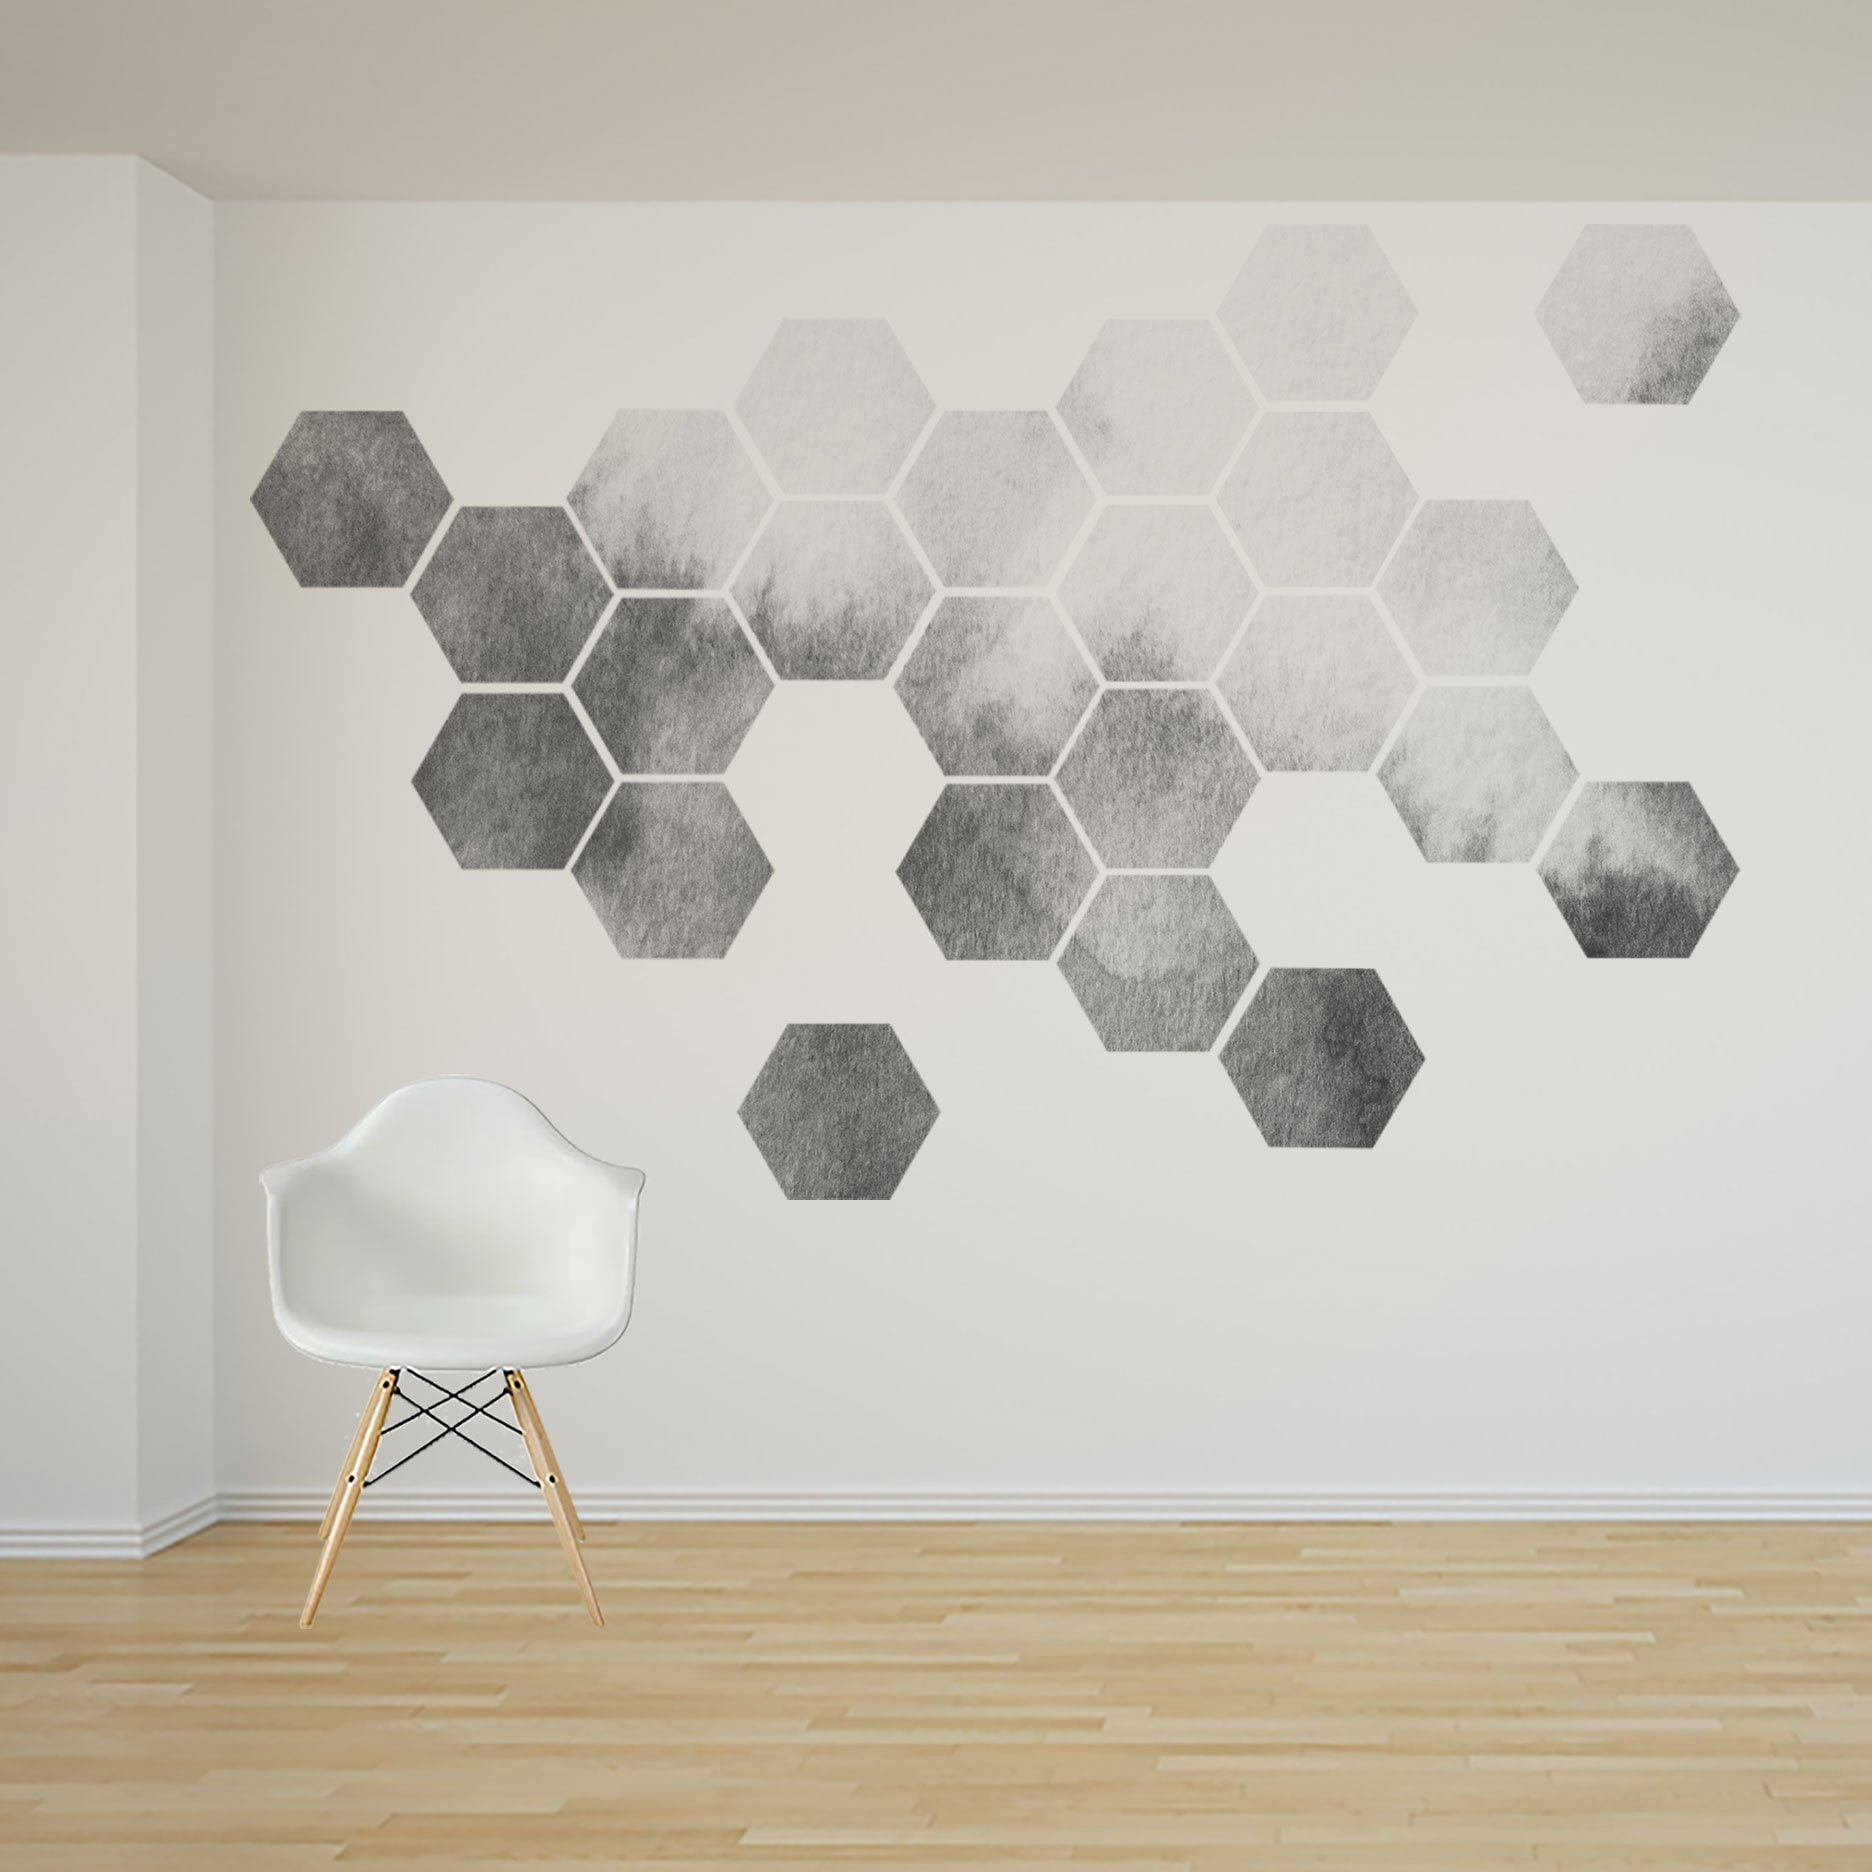 Removable honeycomb wall decal 16 or 24 hexagon stickers self adhesive canvas art sticker watercolor design